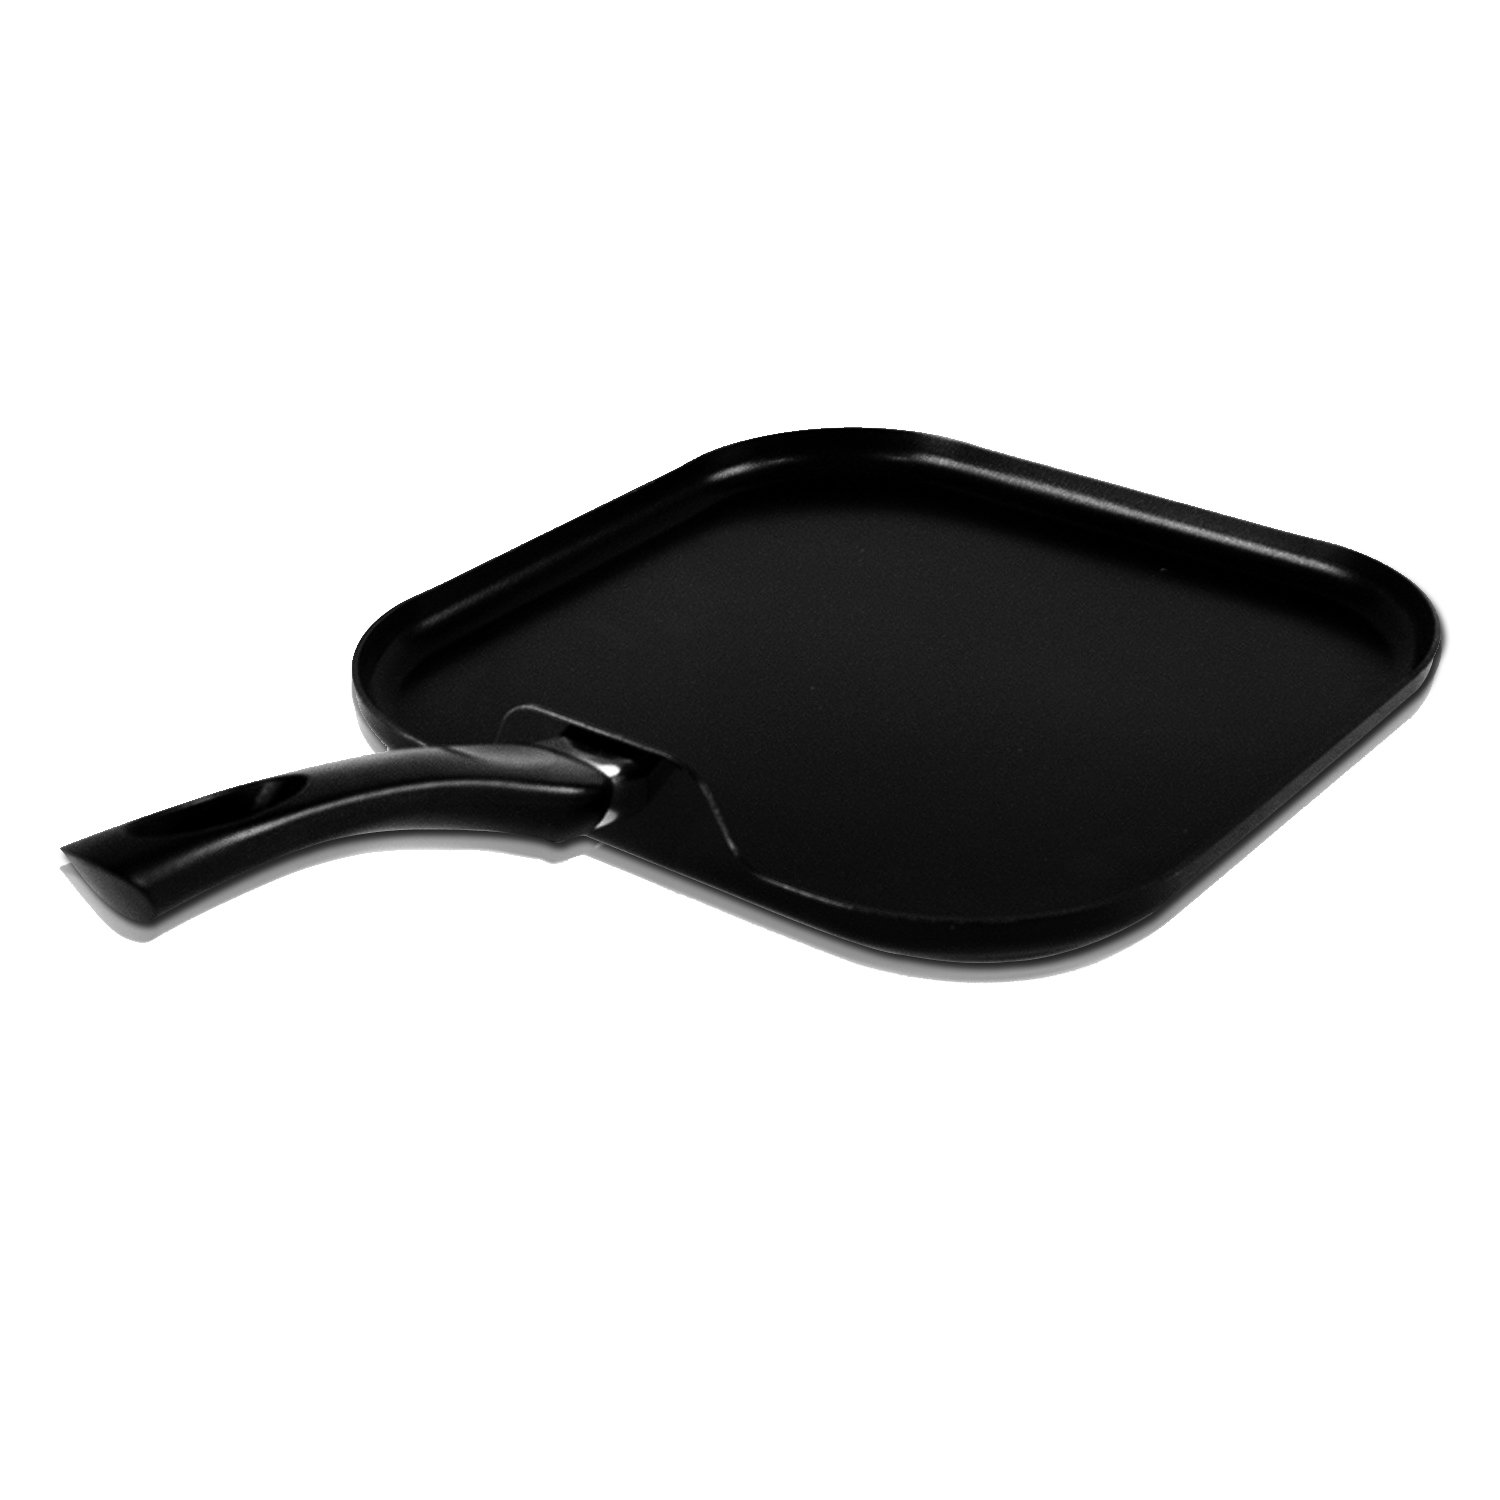 Gourmet Chef JL-2801 Non-Stick Griddle, 11-Inch